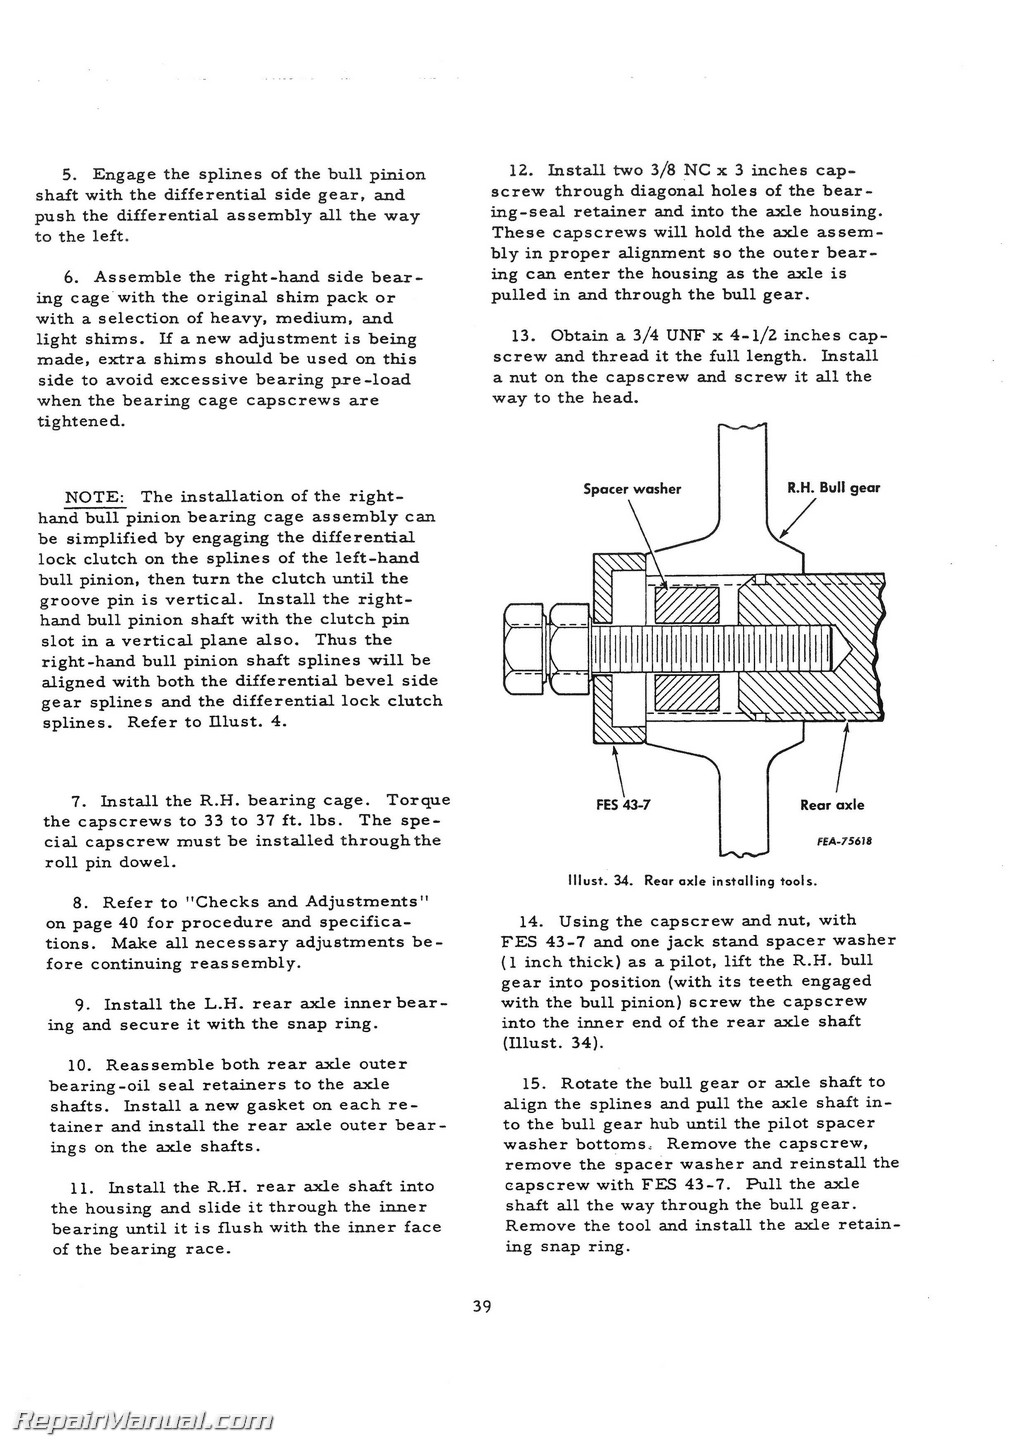 International Harvester Backhoe 2500 Wiring Schematic Books Of 424 Tractor Diagram Free Download